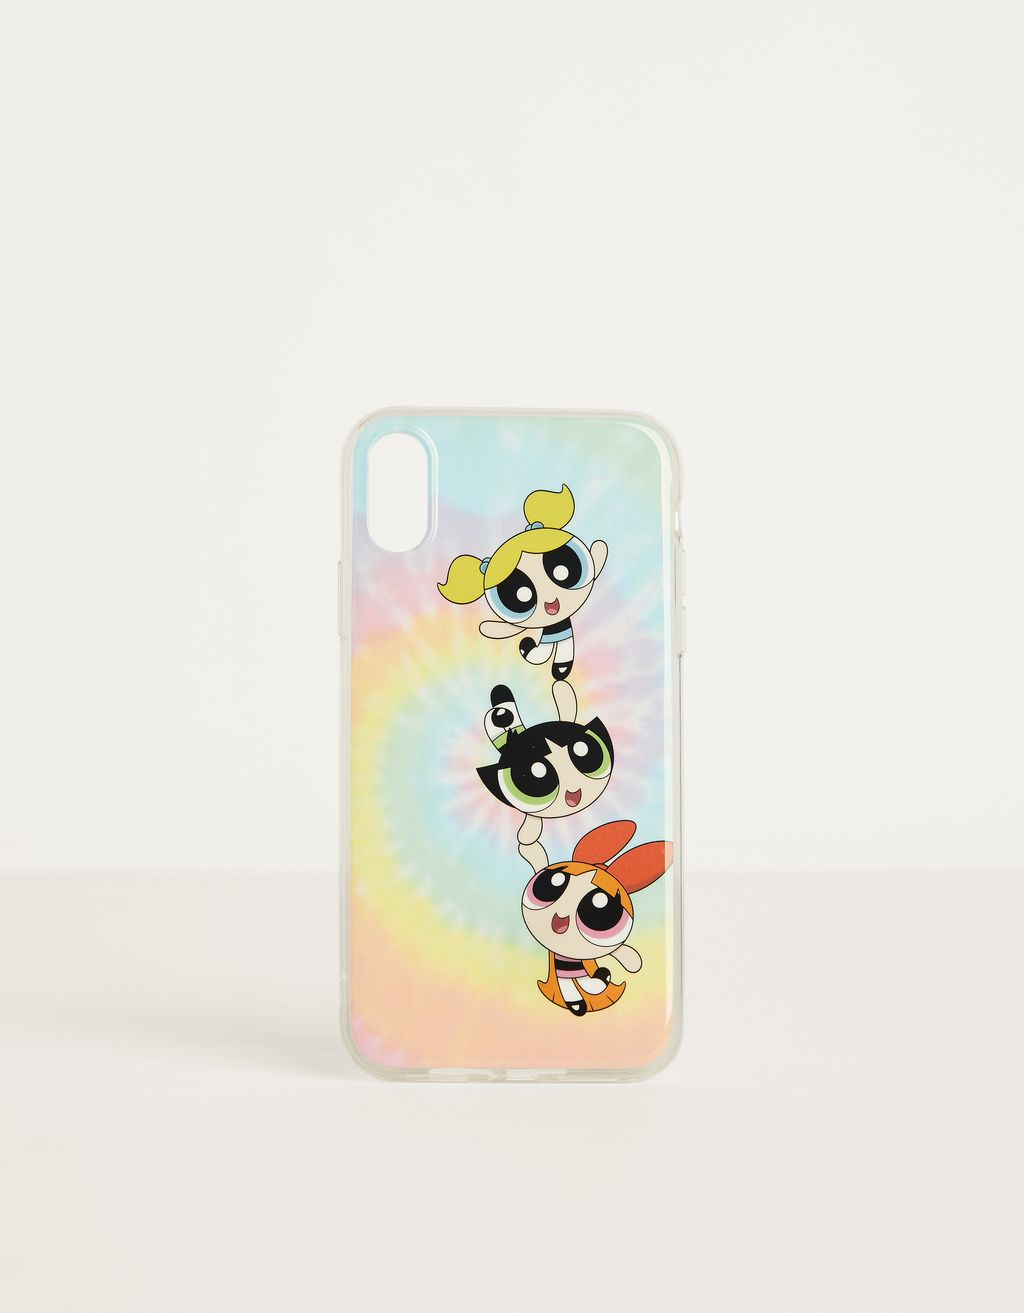 Smartphone-Hülle Powerpuff Girls x Bershka iPhone XR